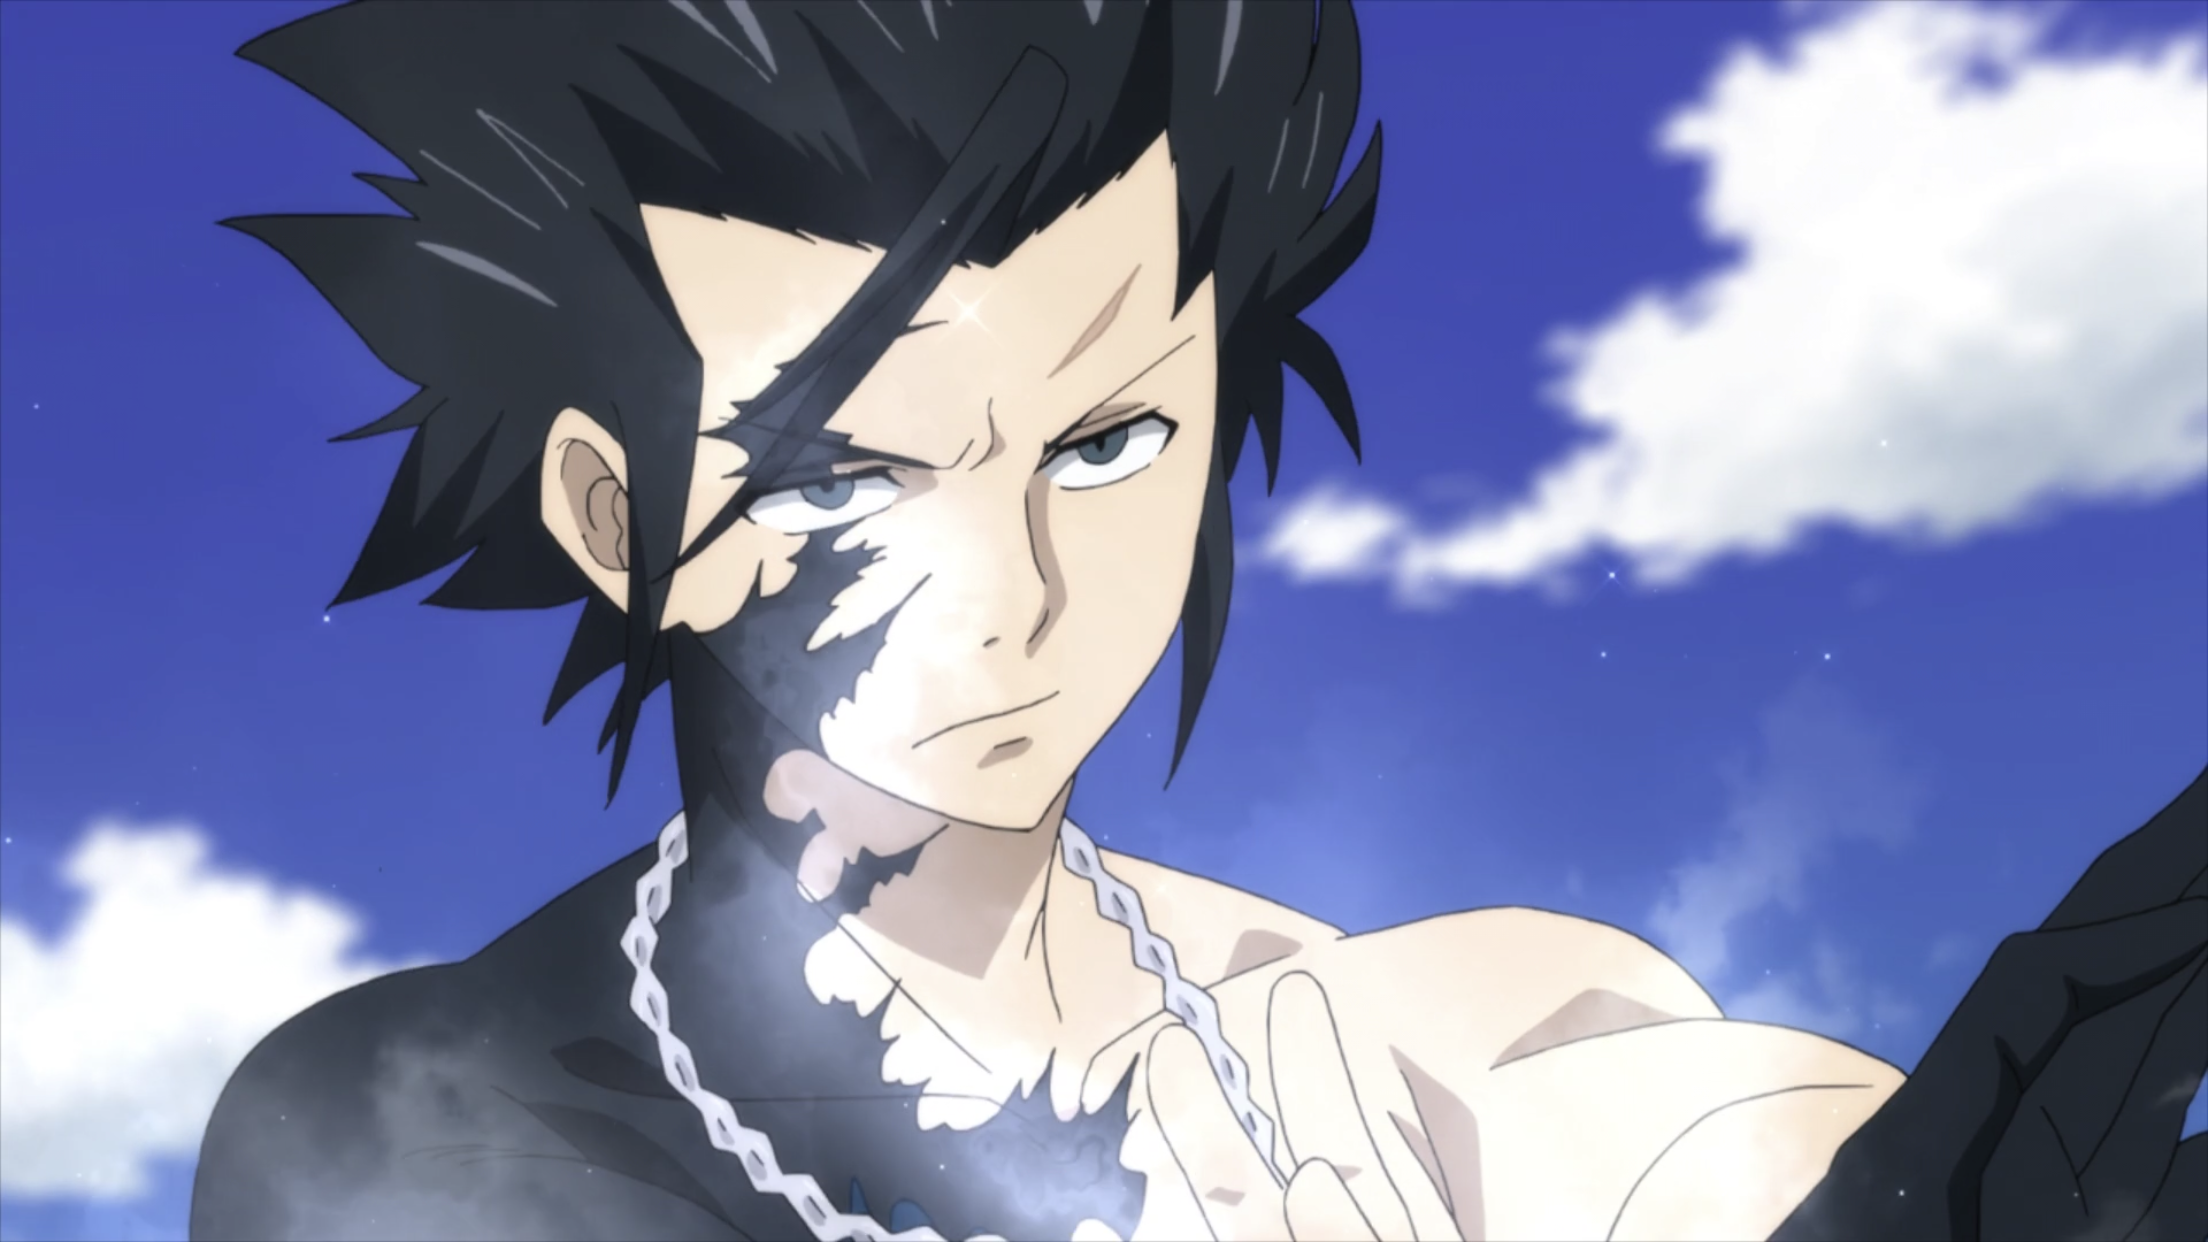 Fairy Tail 2018 Fairy Tail Gray Fairy Tail Anime Fairy Tail Characters